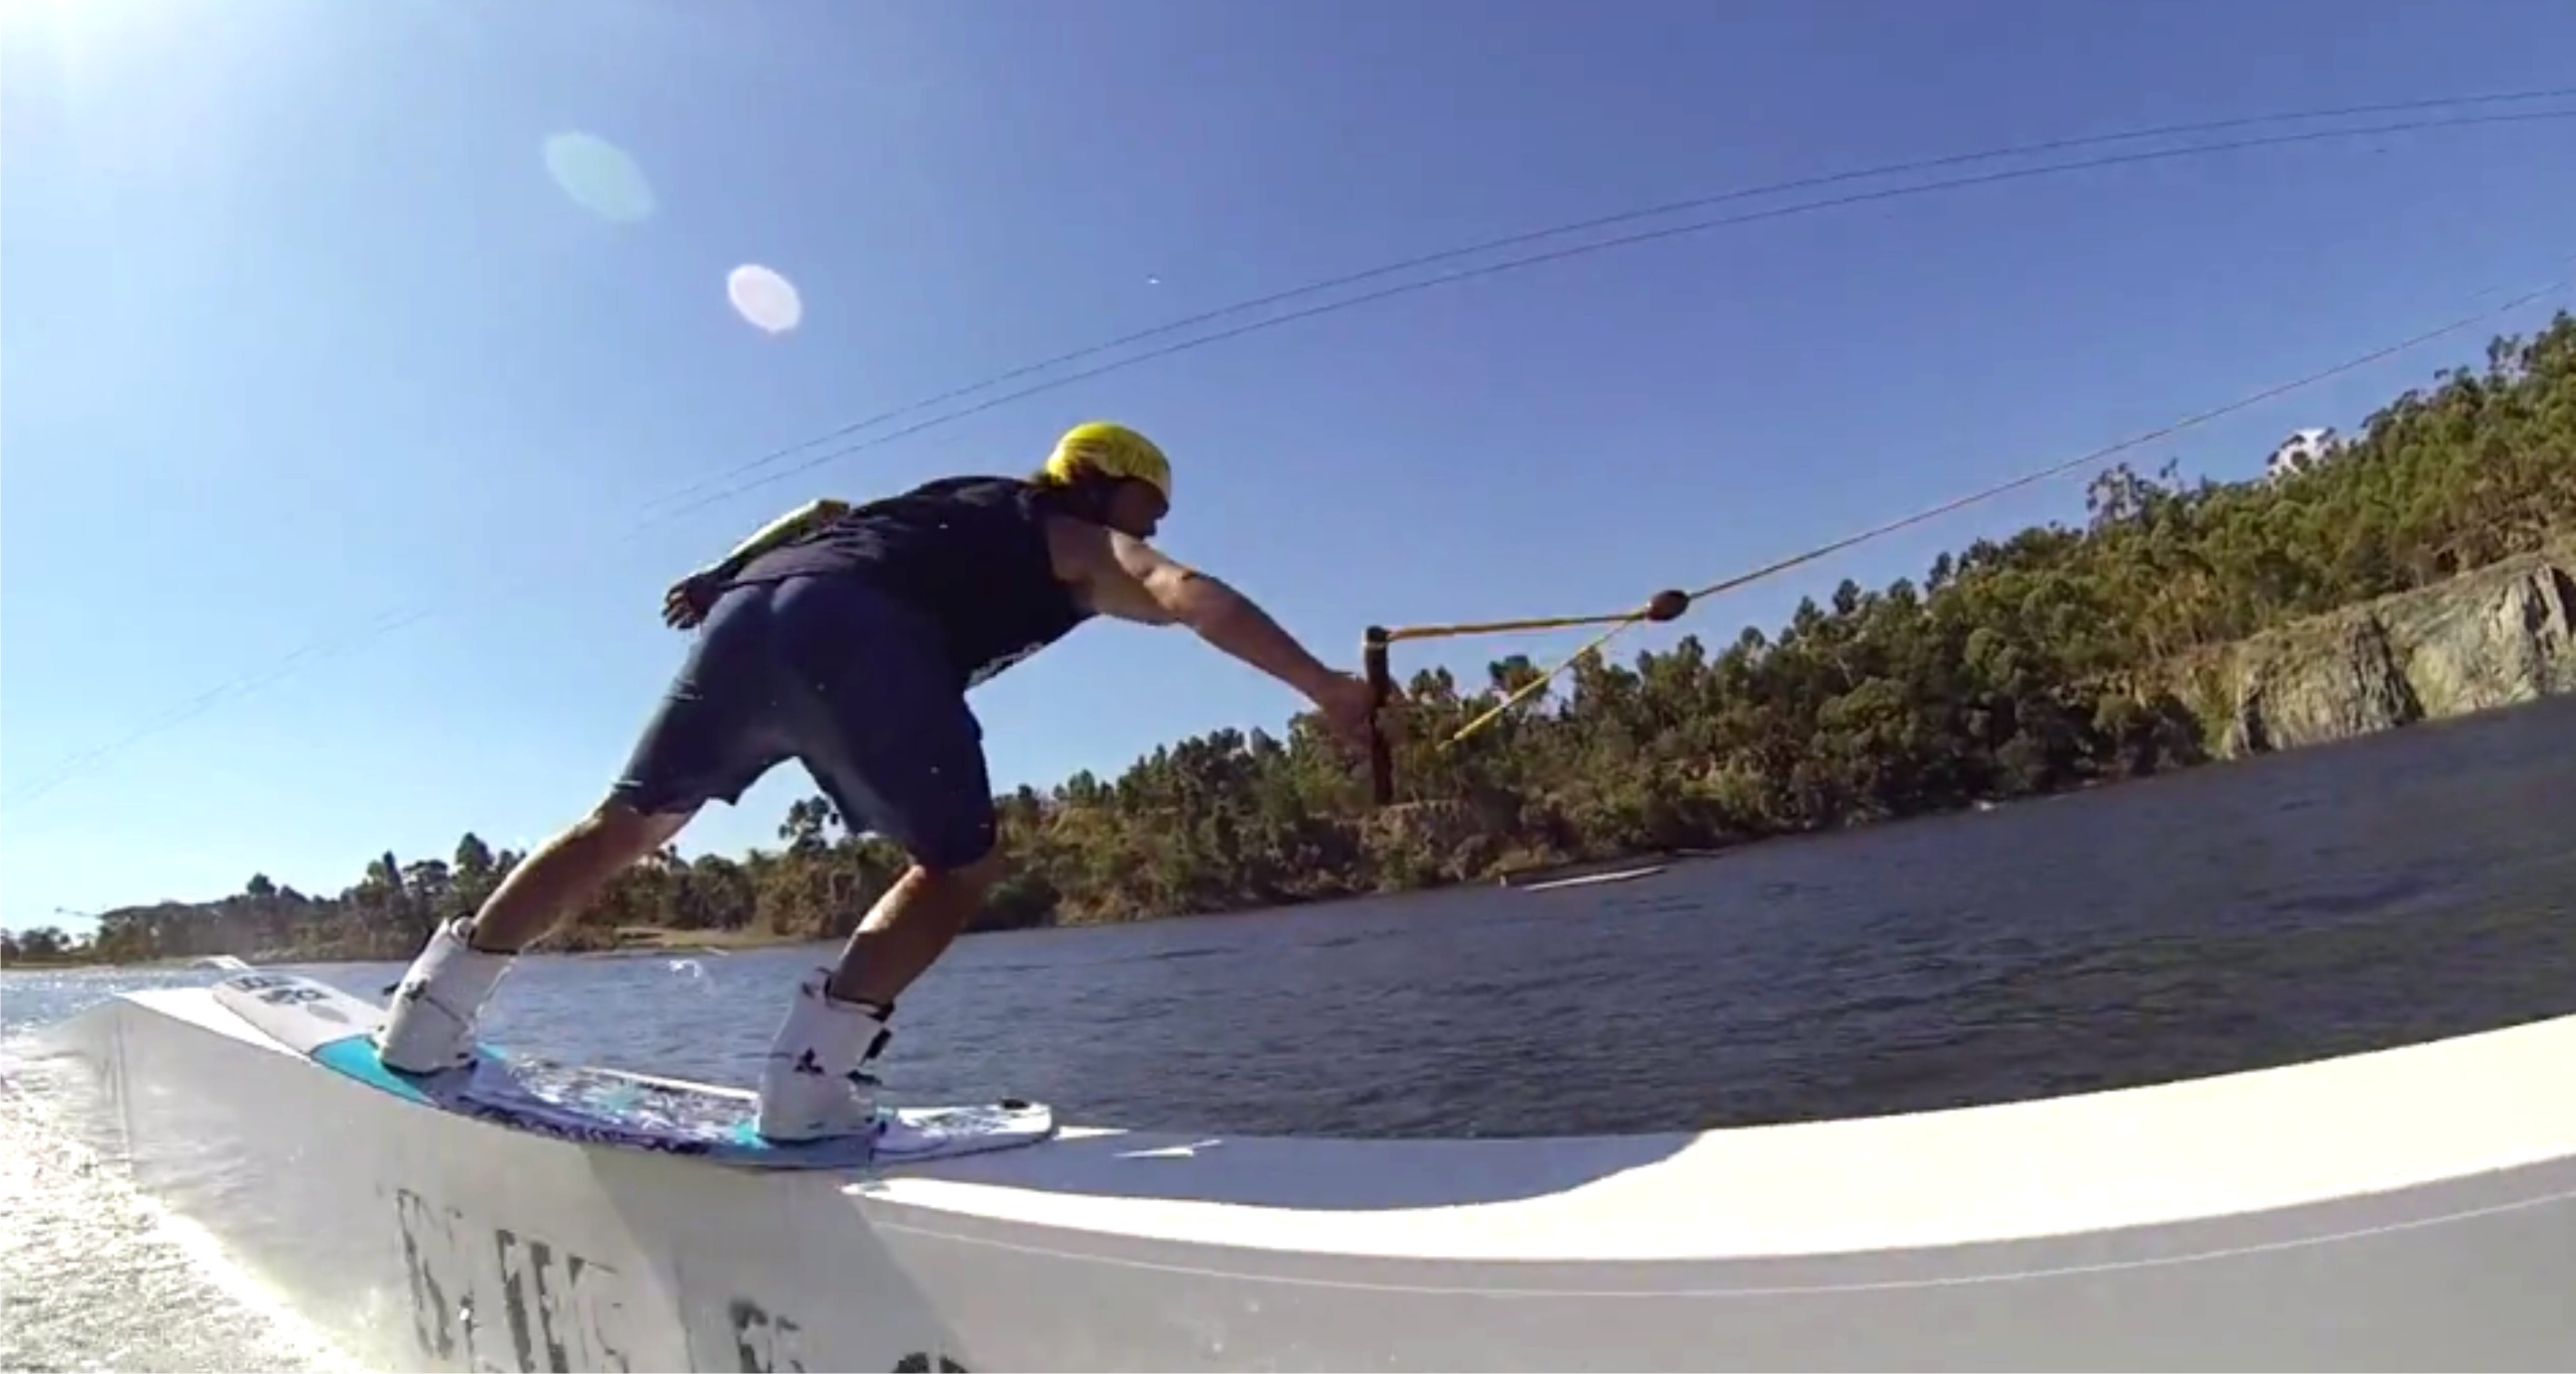 Craig Eygenberger with his latest Wakeboarding edit